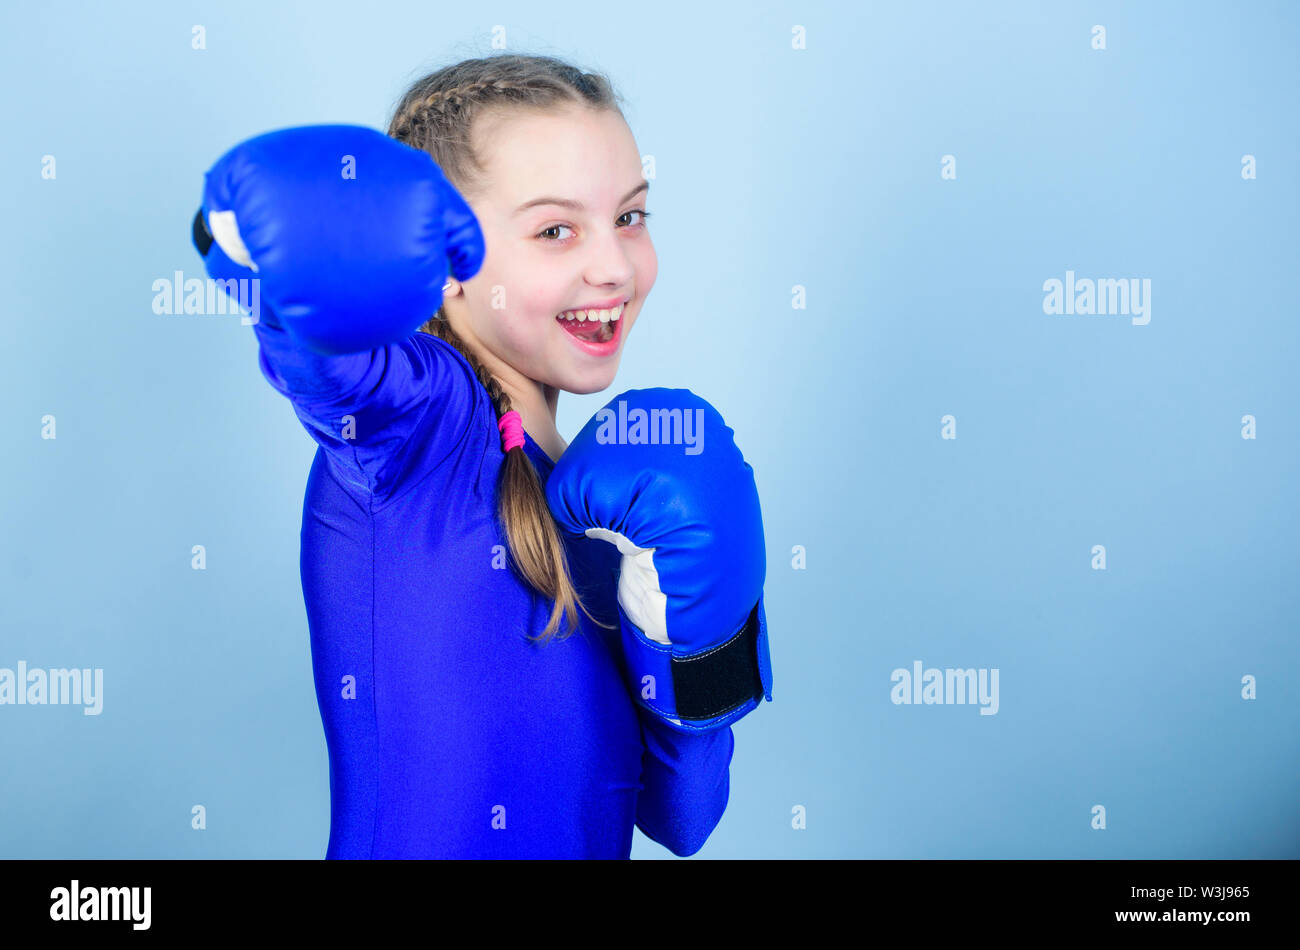 Feminism concept. With great power comes great responsibility. Boxer child in boxing gloves. Girl cute boxer on blue background. Rise of women boxers. Female boxer change attitudes within sport. - Stock Image